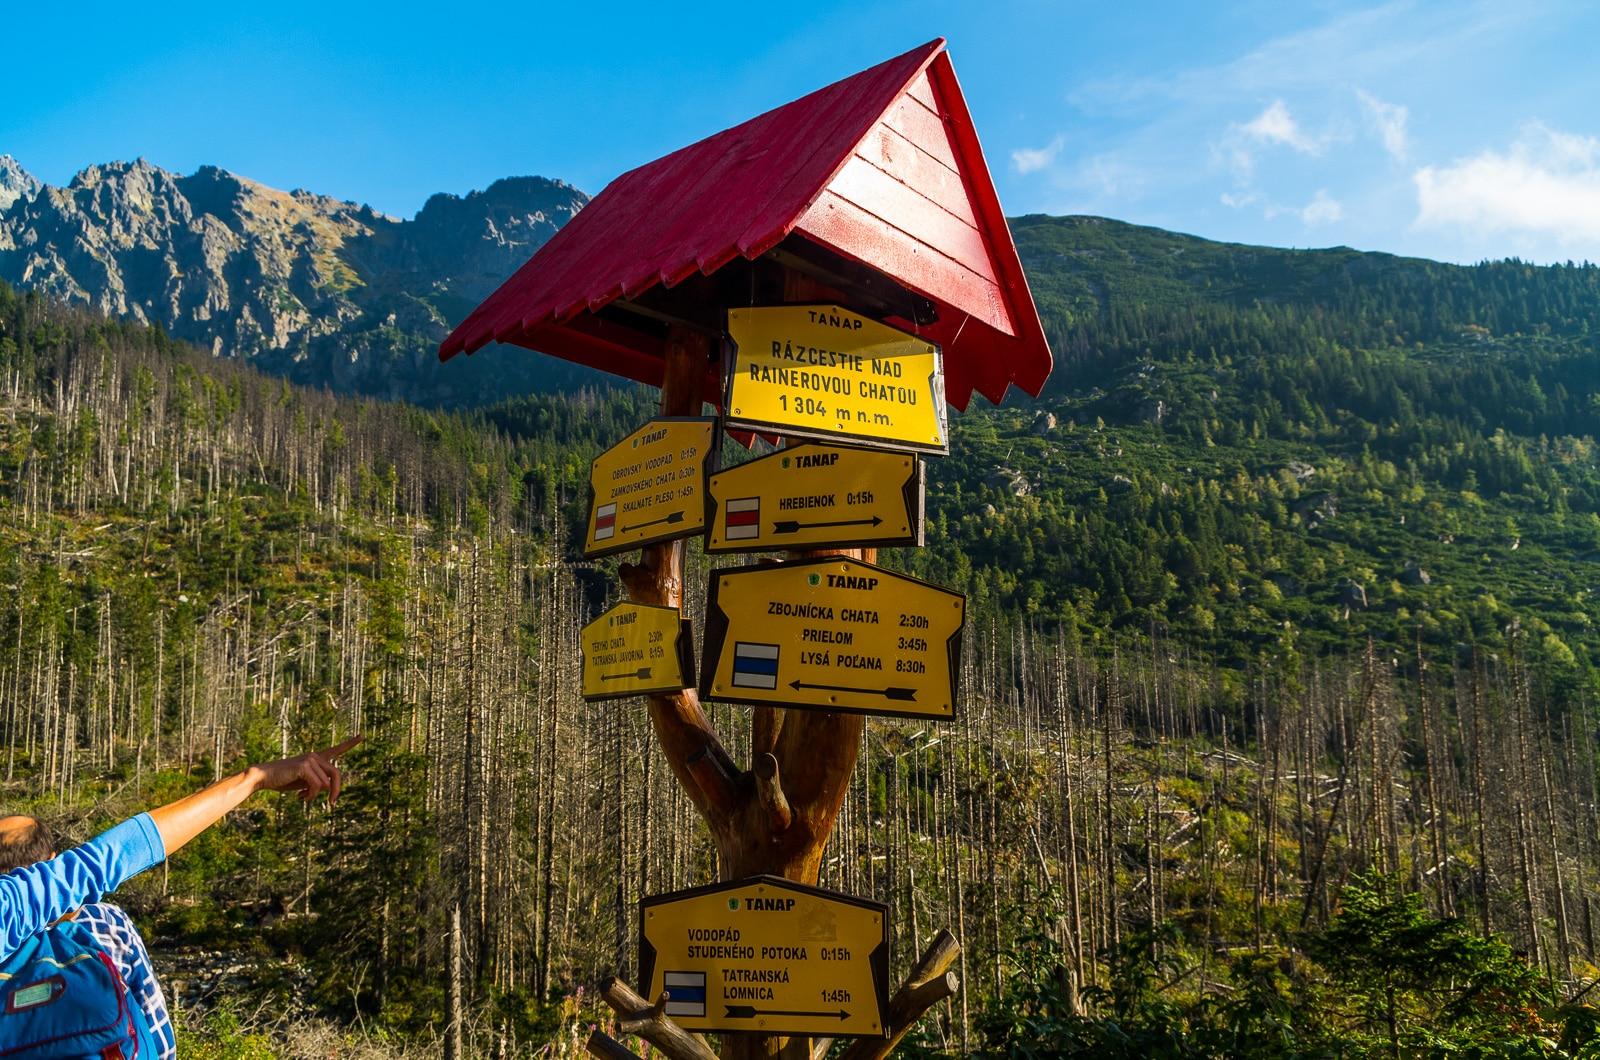 Hiking guide image of trail sign in slovakia